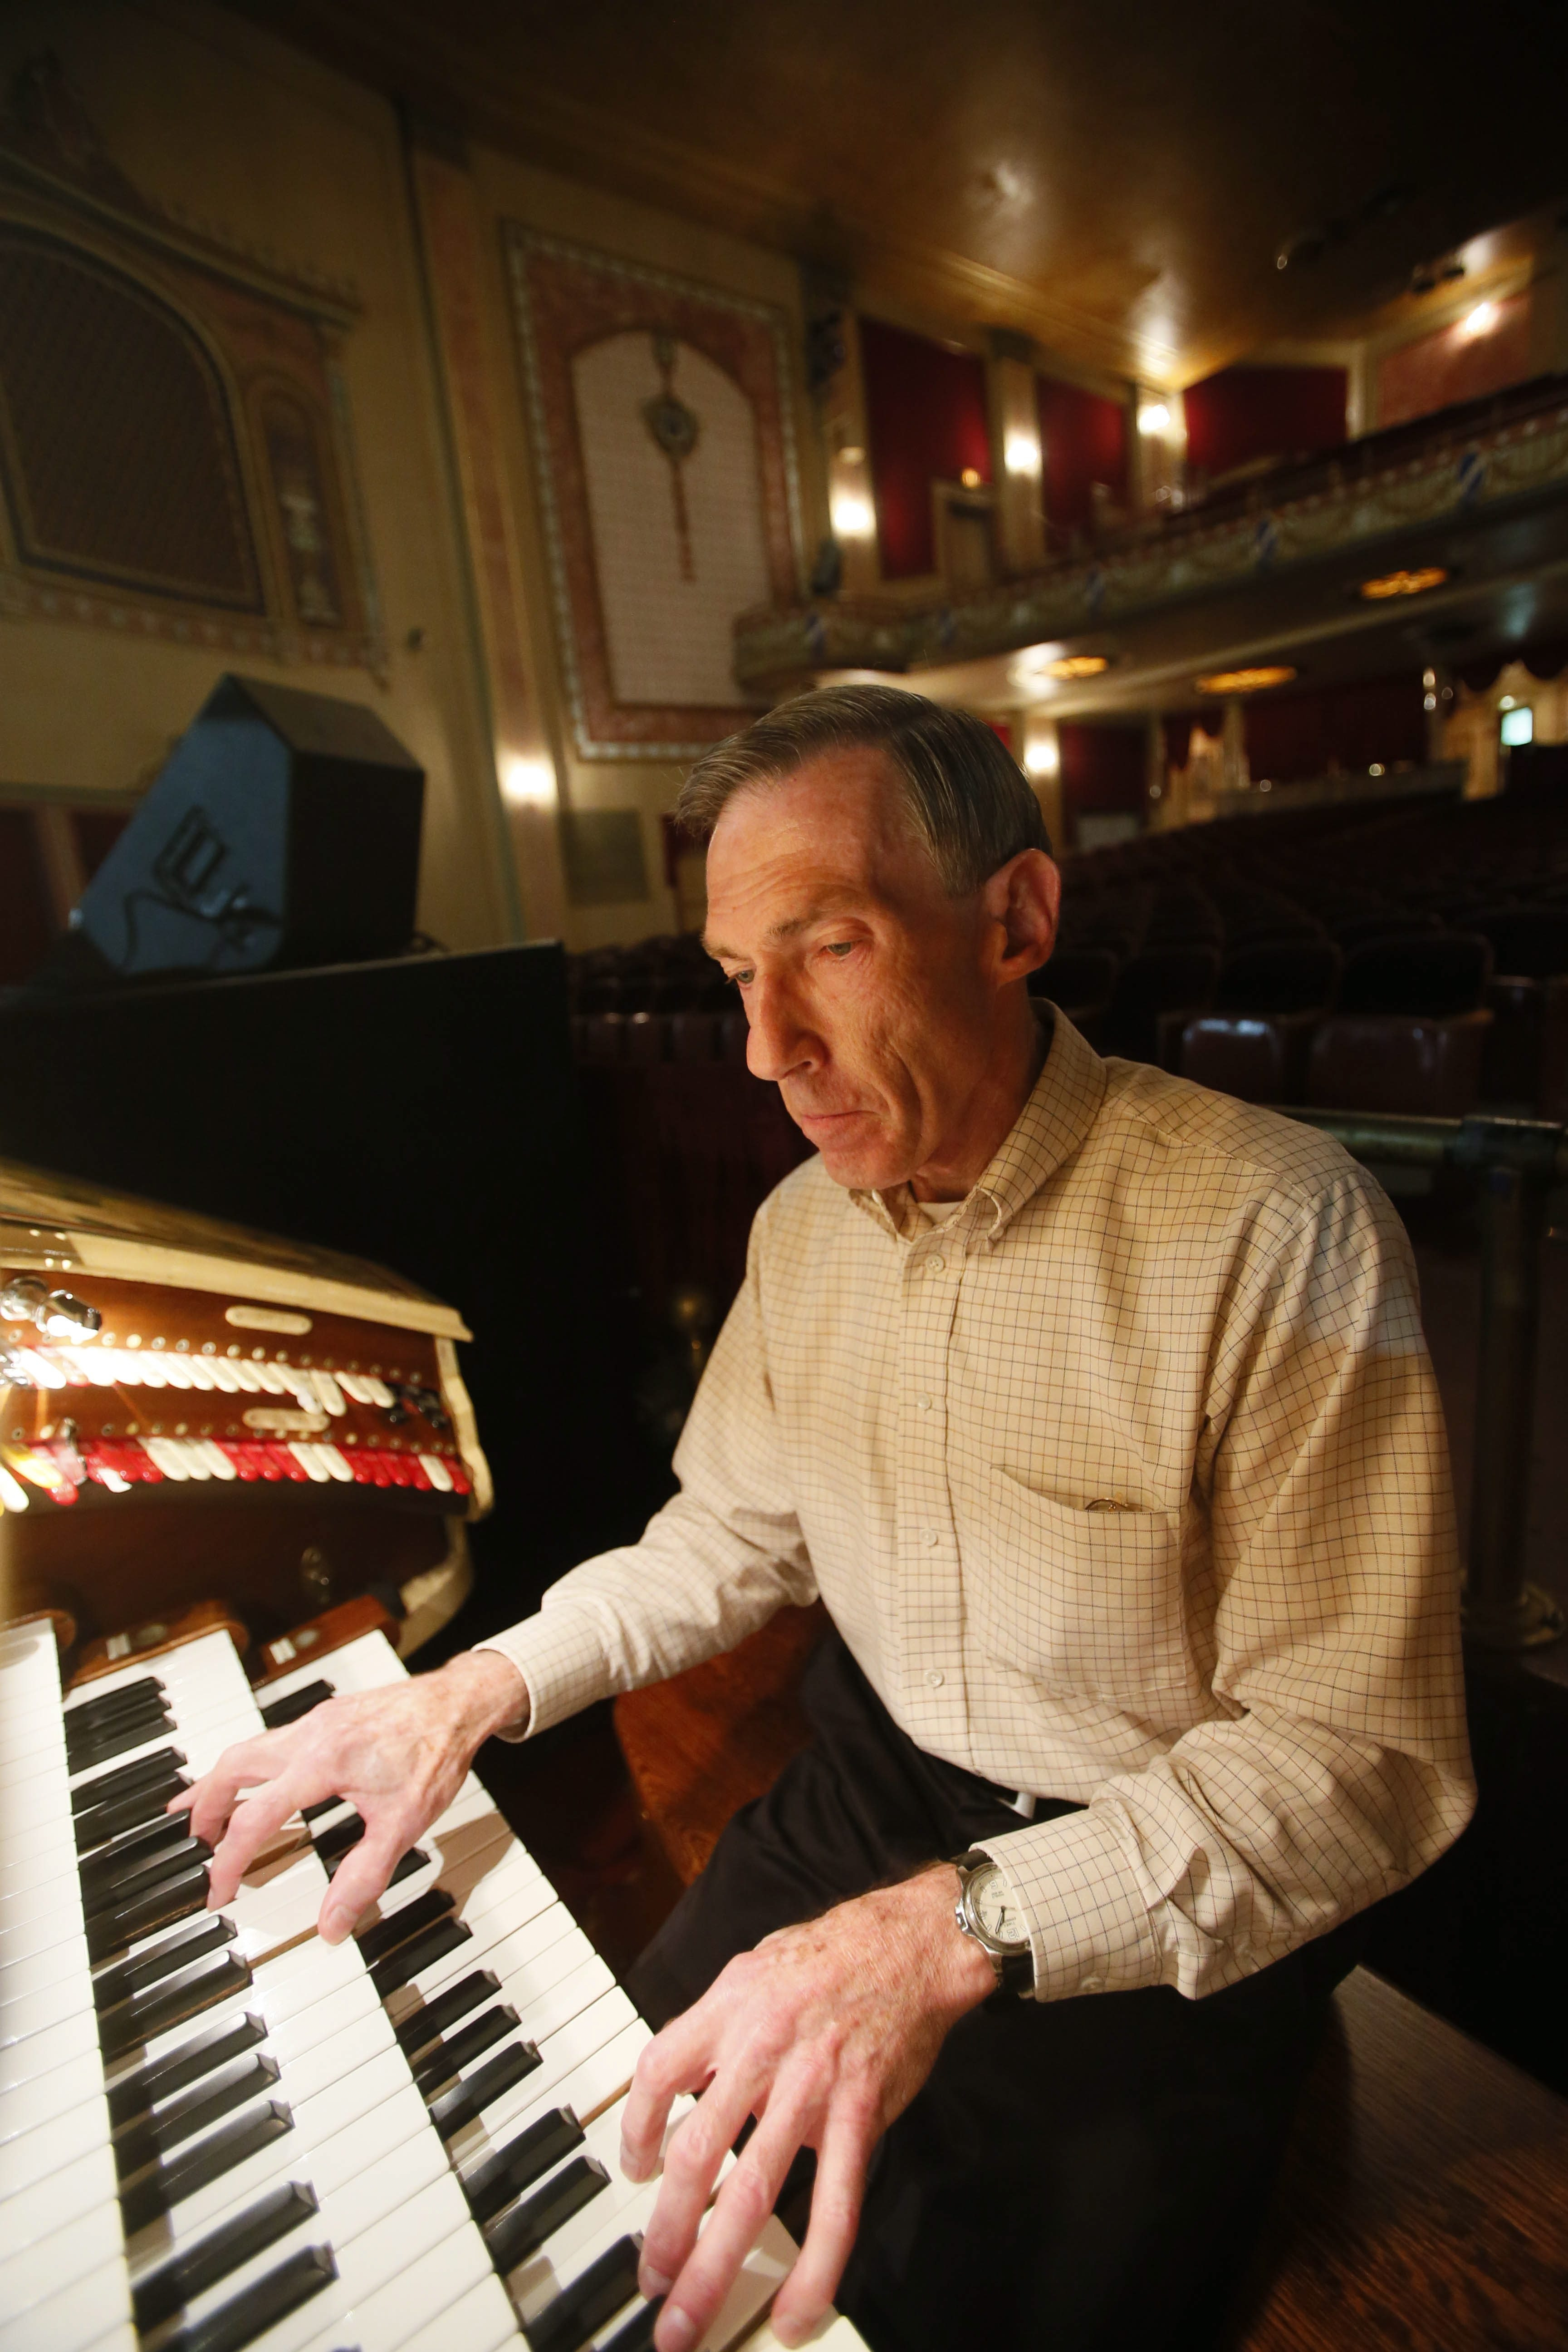 Tom McGinley plays the Mighty Wurlitzer at the Riviera Theatre in North Tonawanda. He has been the house organist for nearly 10 years.